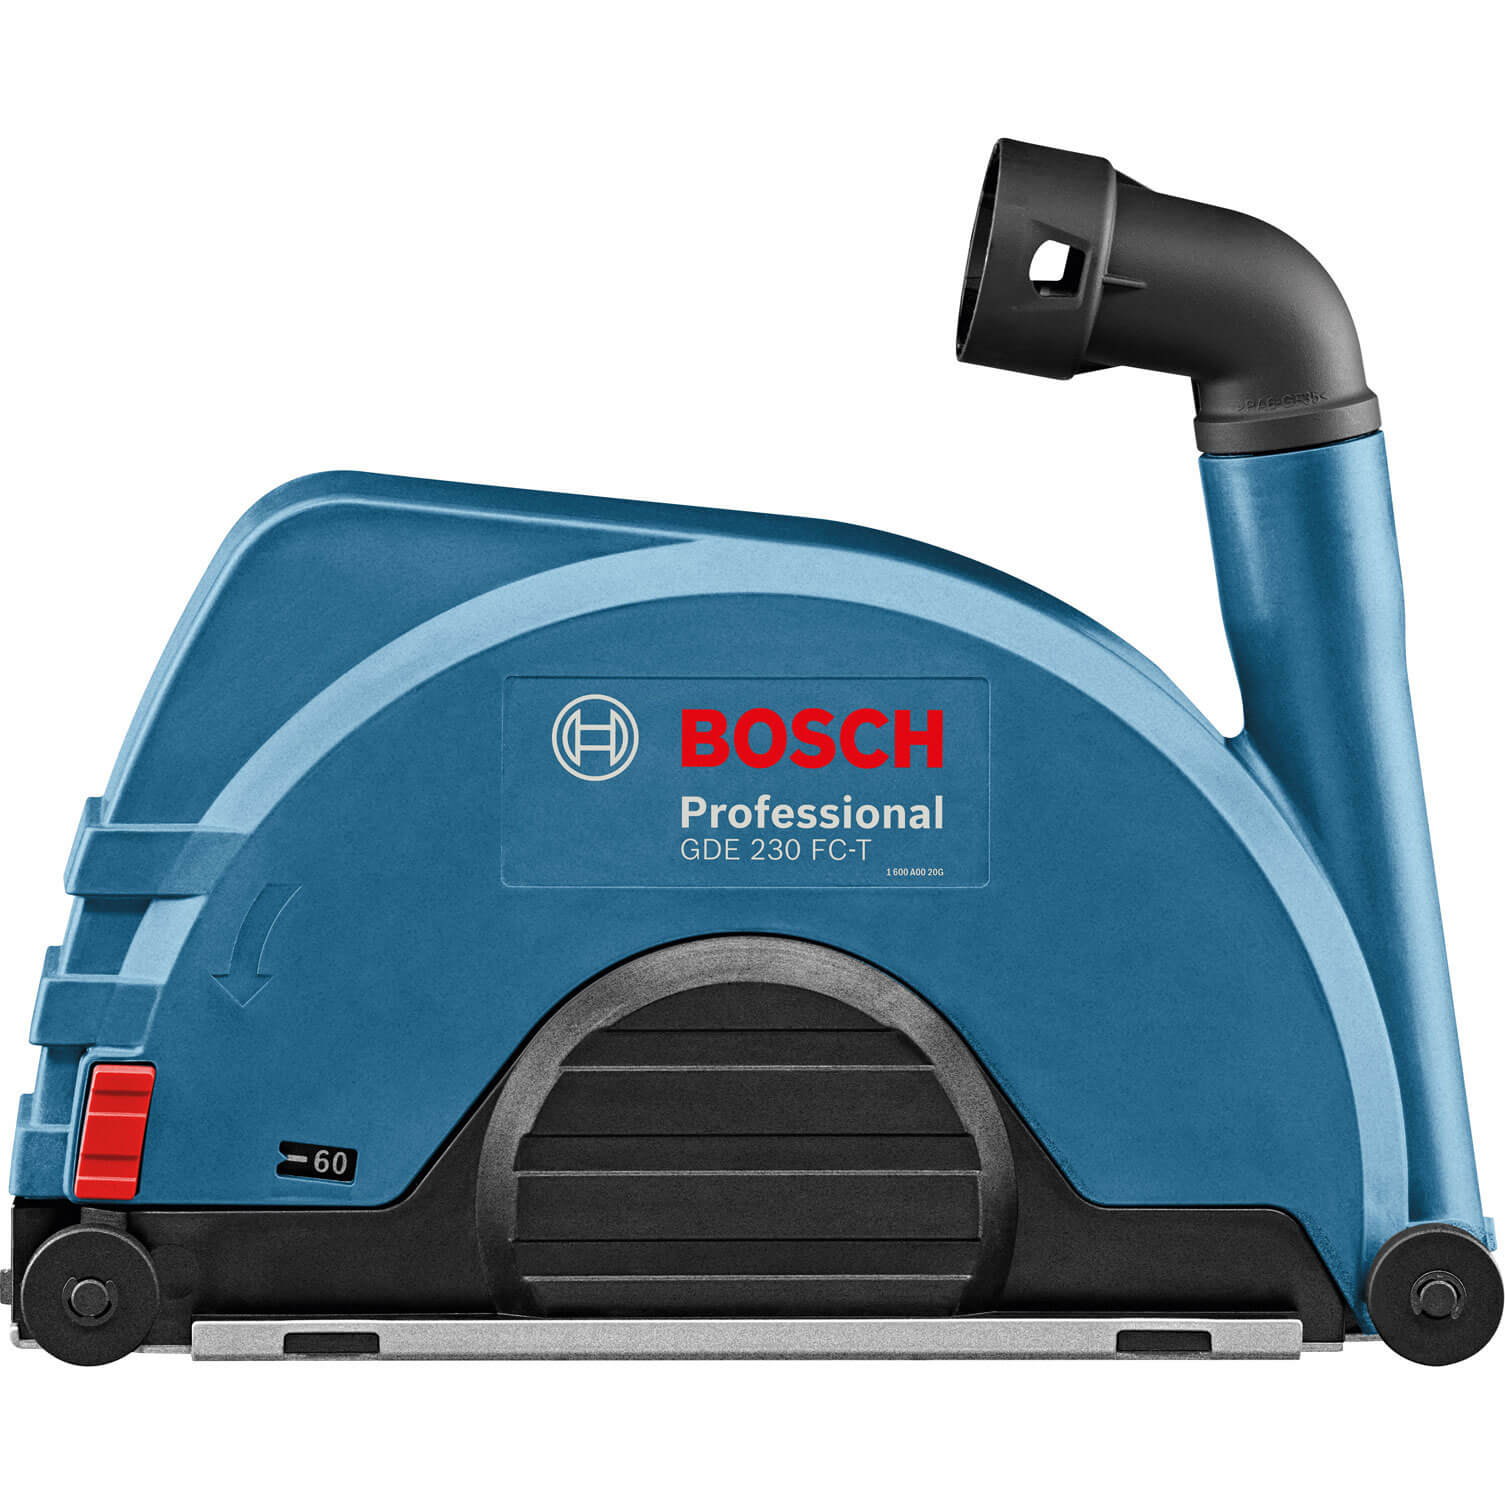 Image of Bosch GDE 230 FC-T Angle Grinder Dust Guard 230mm